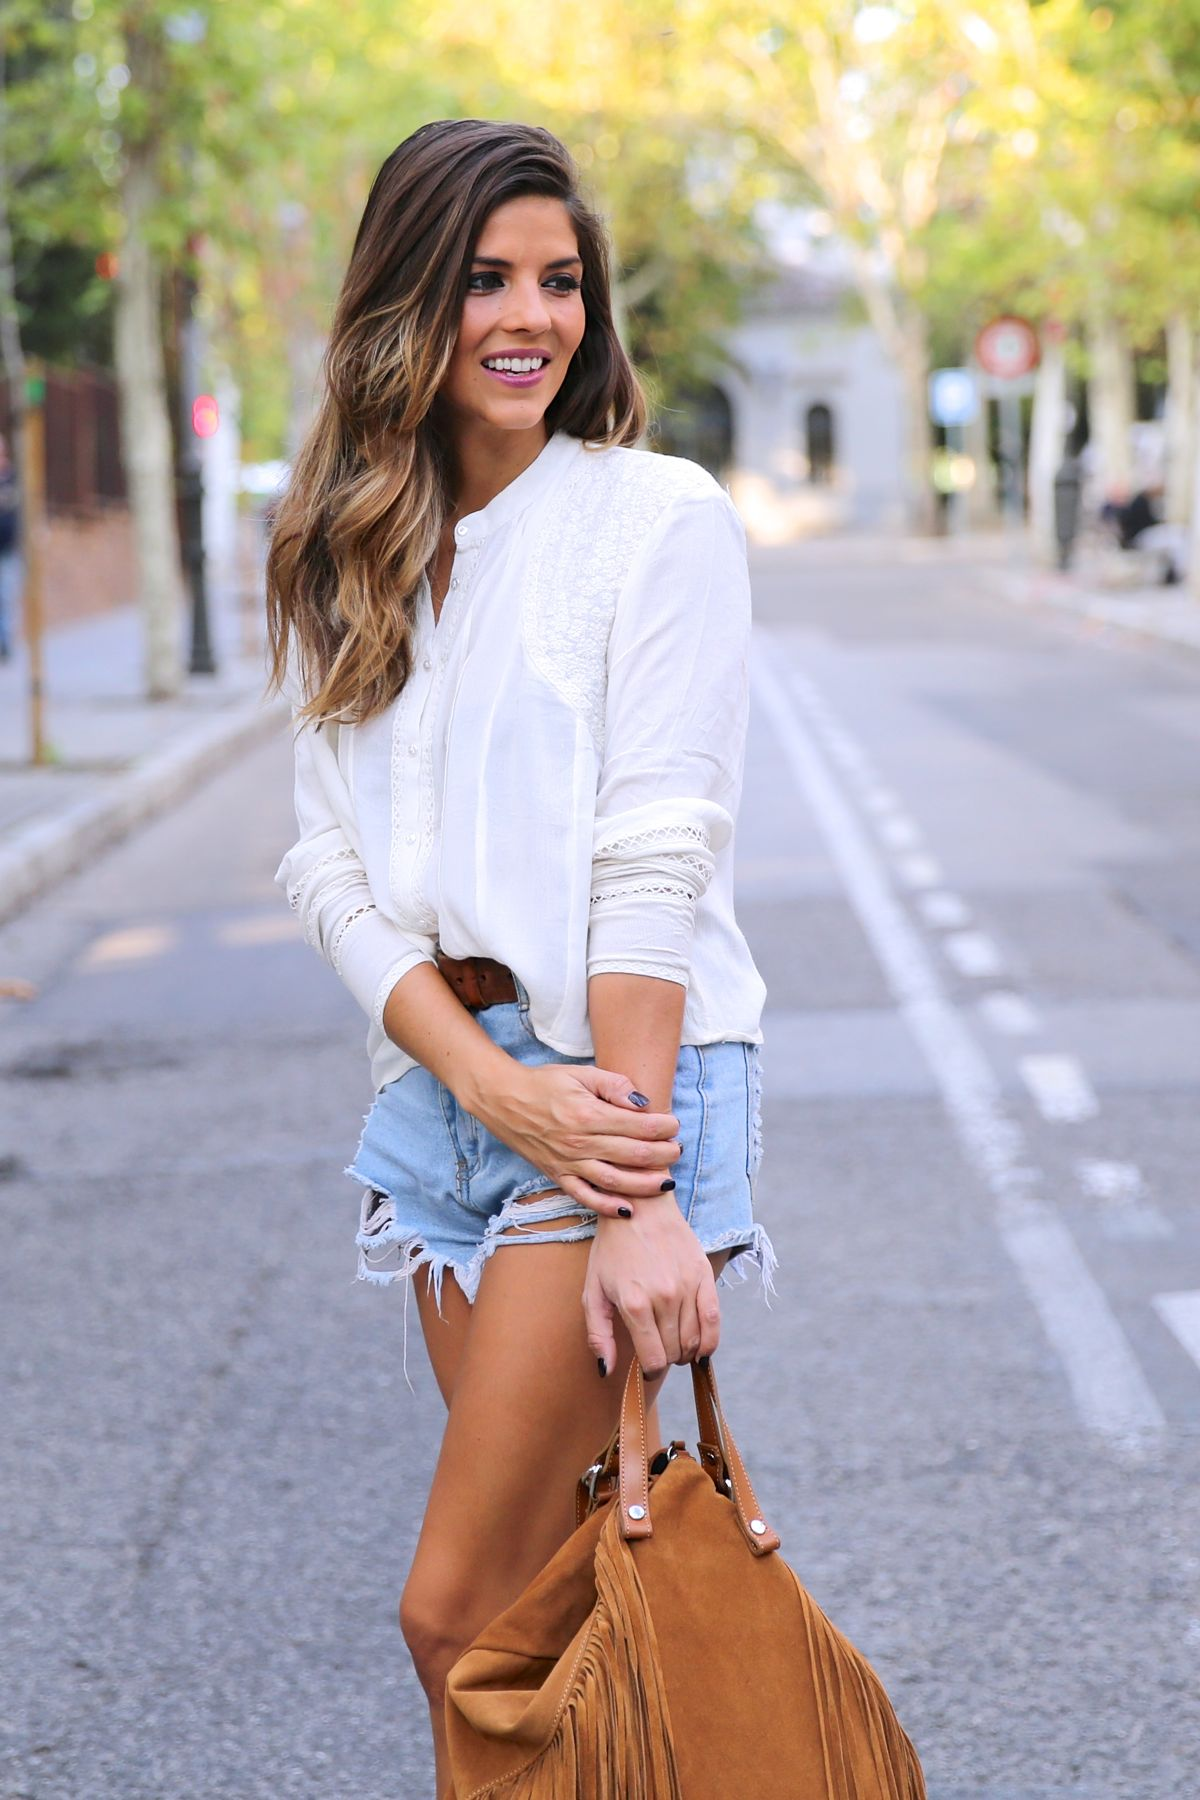 trendy_taste-look-outfit-street_style-ootd-blog-blogger-fashion_spain-moda_españa-boho-hippie-flecos-botines_camperos-cowboy_booties-mochila-backpack-blusa-camisa-denim-shorts-vaqueros-2